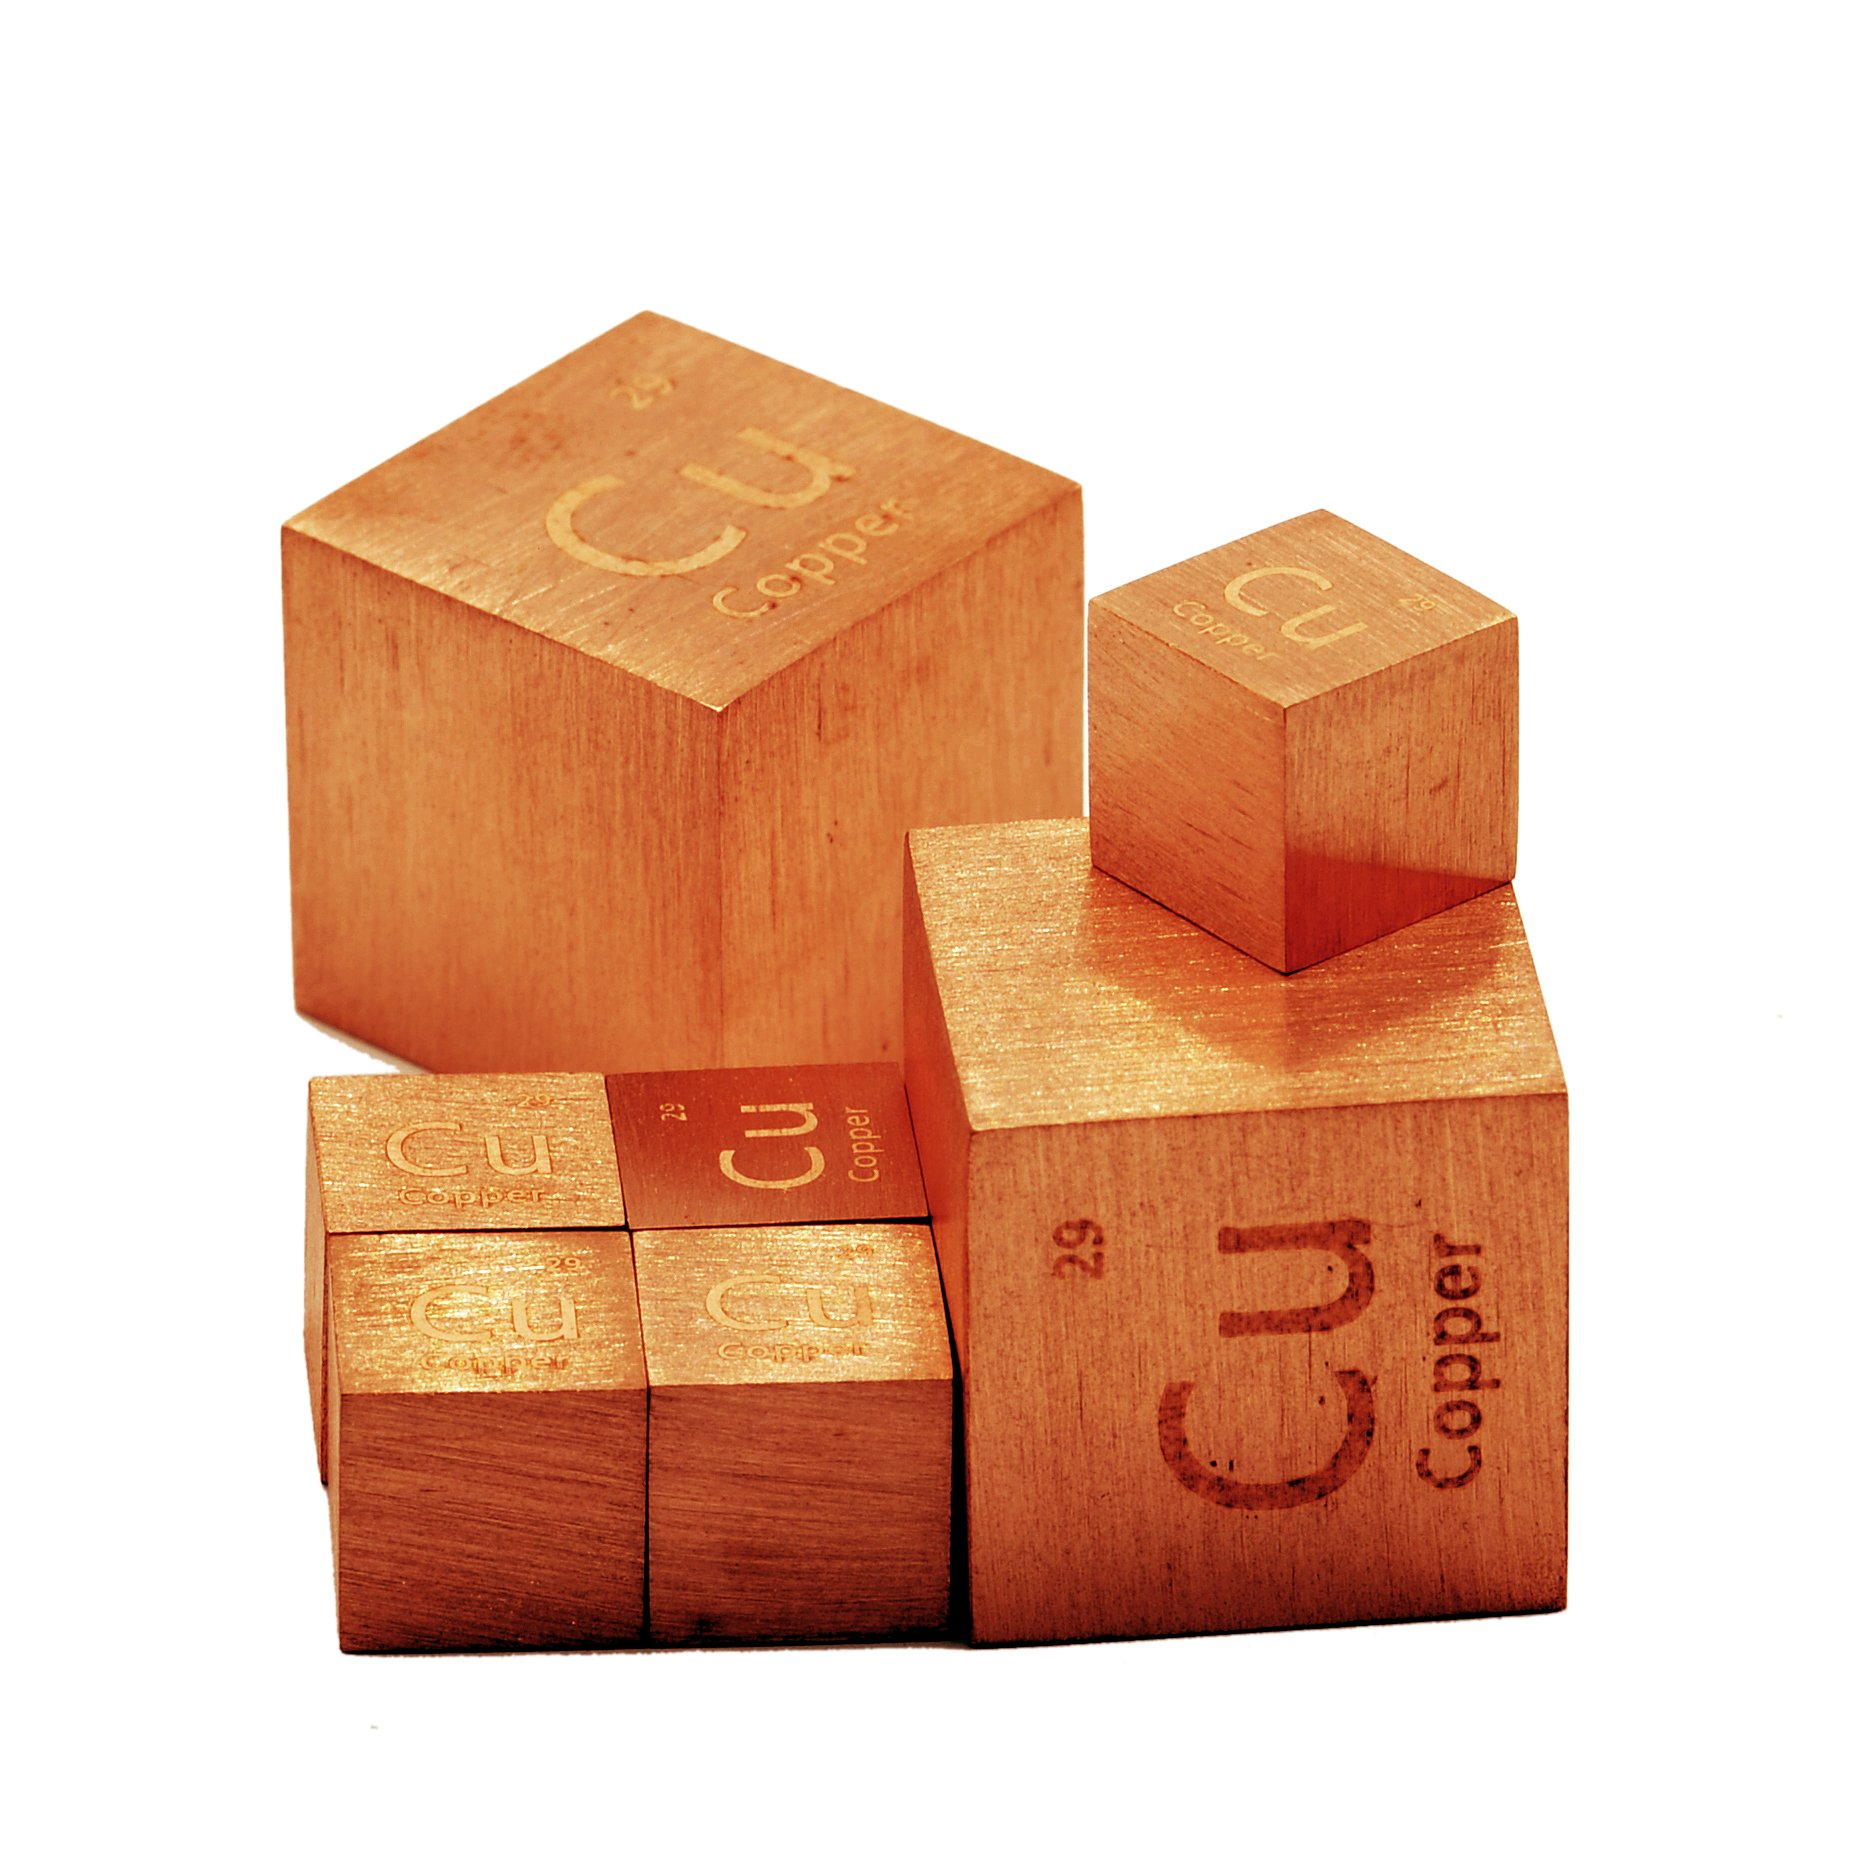 Copper Metal Cube 25mm 99.99% Pure Element Collection by Luciteria Science